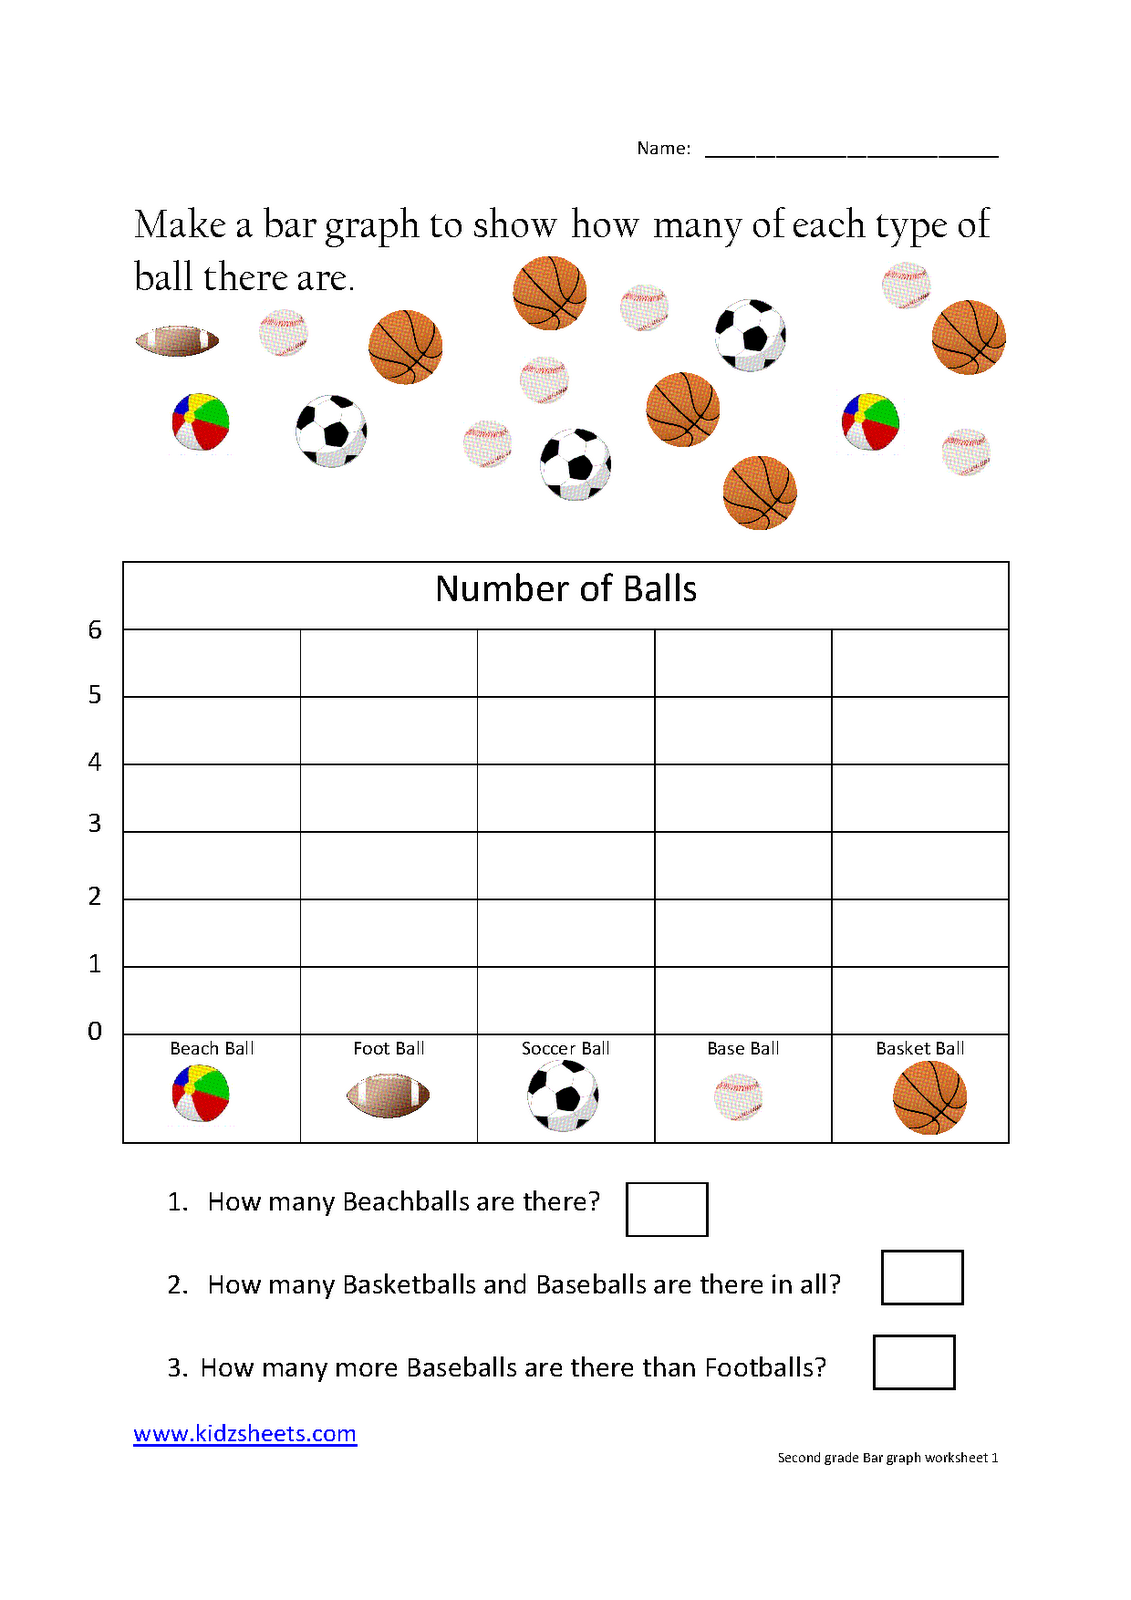 Worksheets Graphing Worksheet kidz worksheets second grade bar graph worksheet1 graph